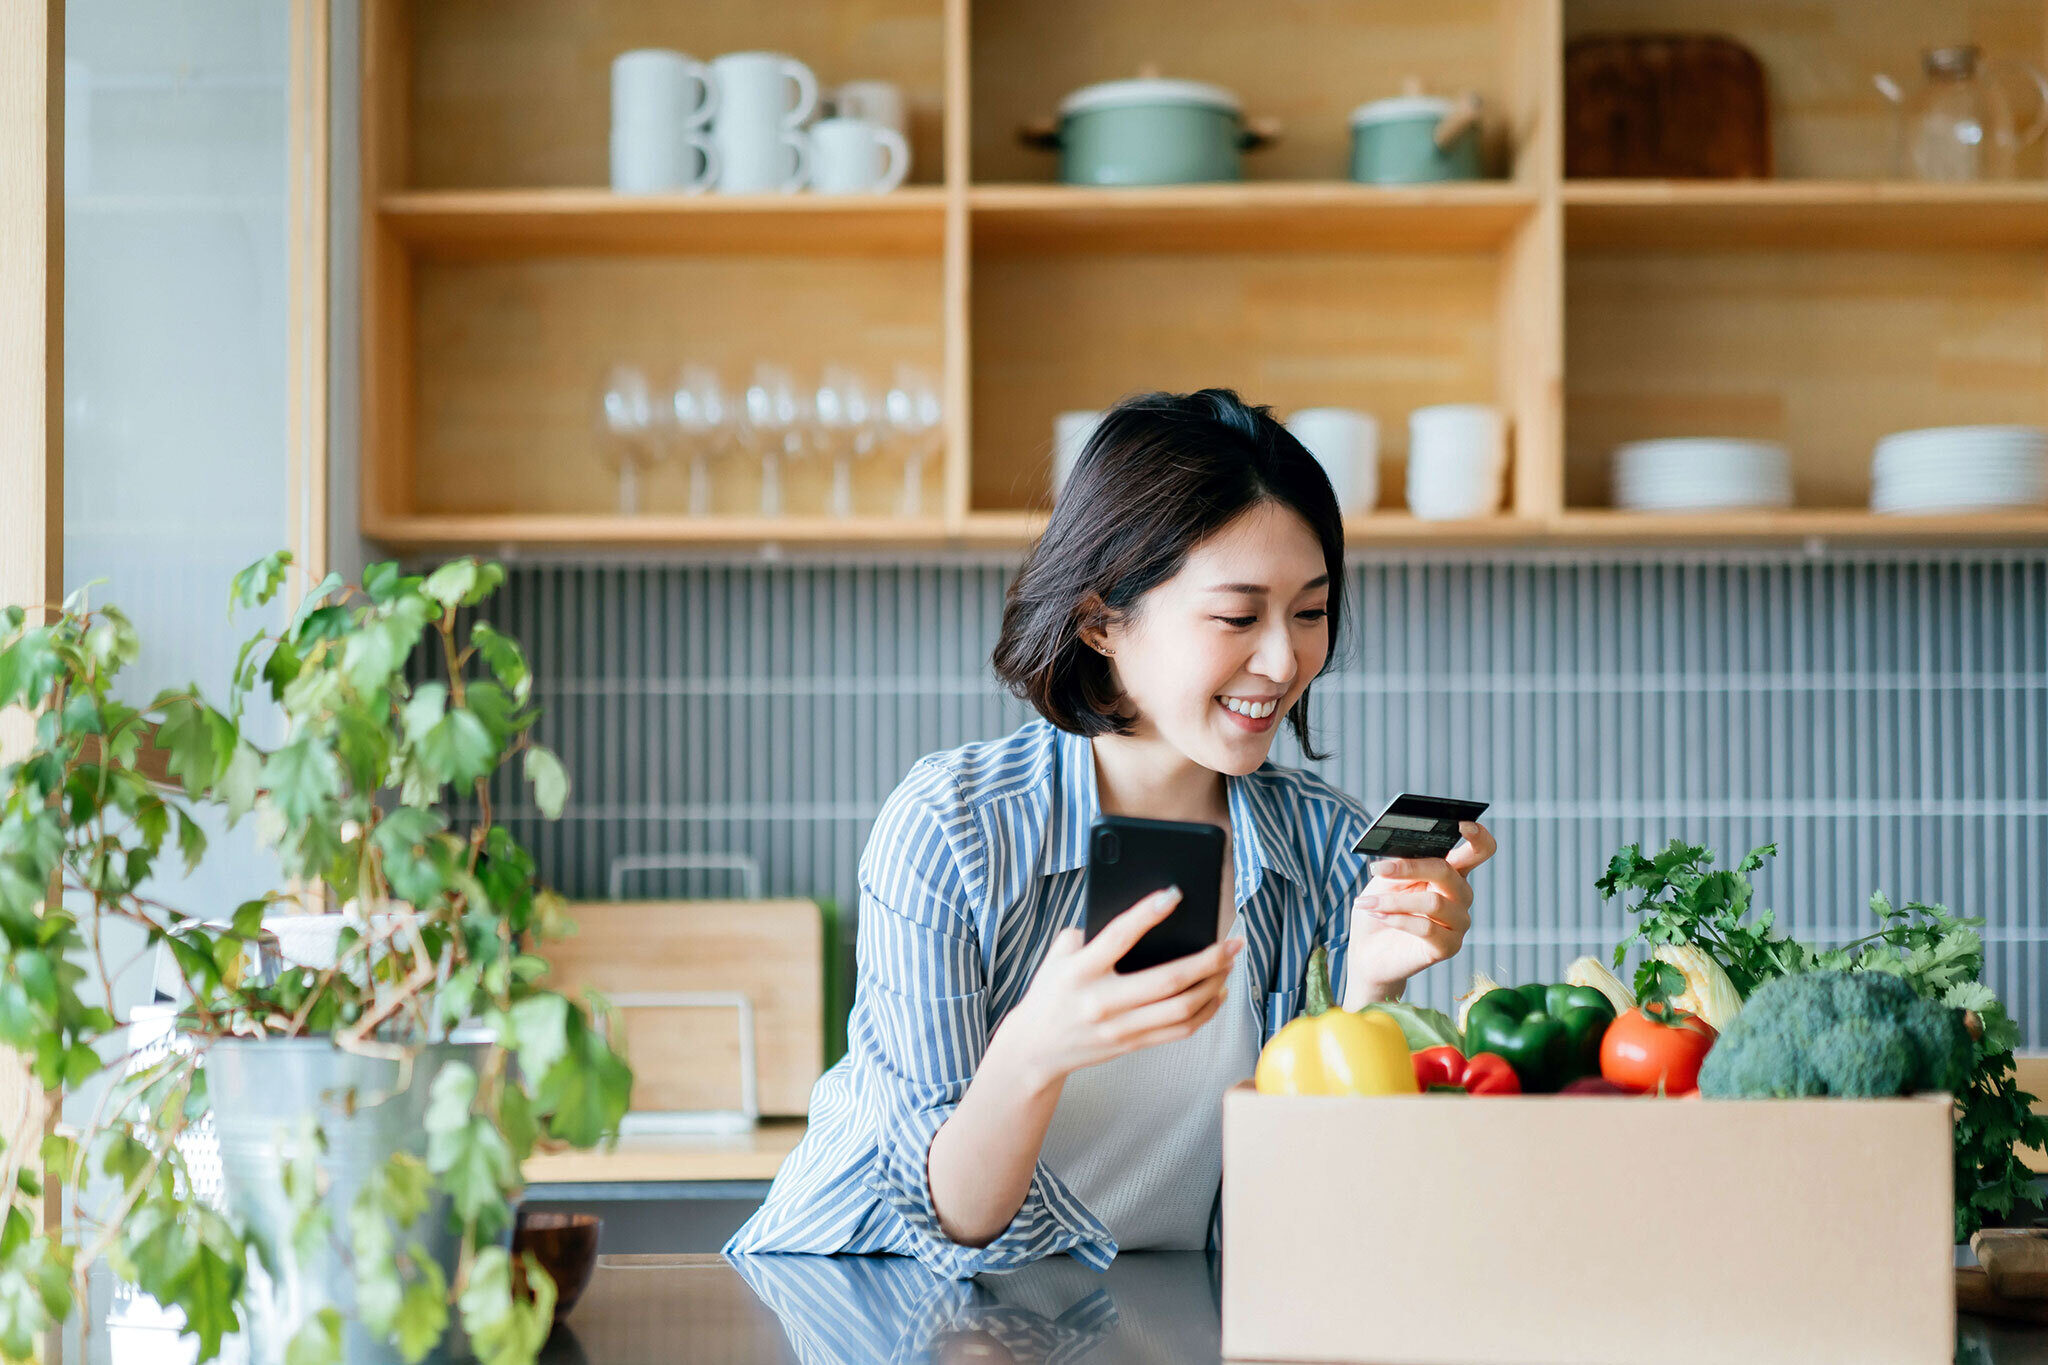 Woman smiling in kitchen with credit card and phone